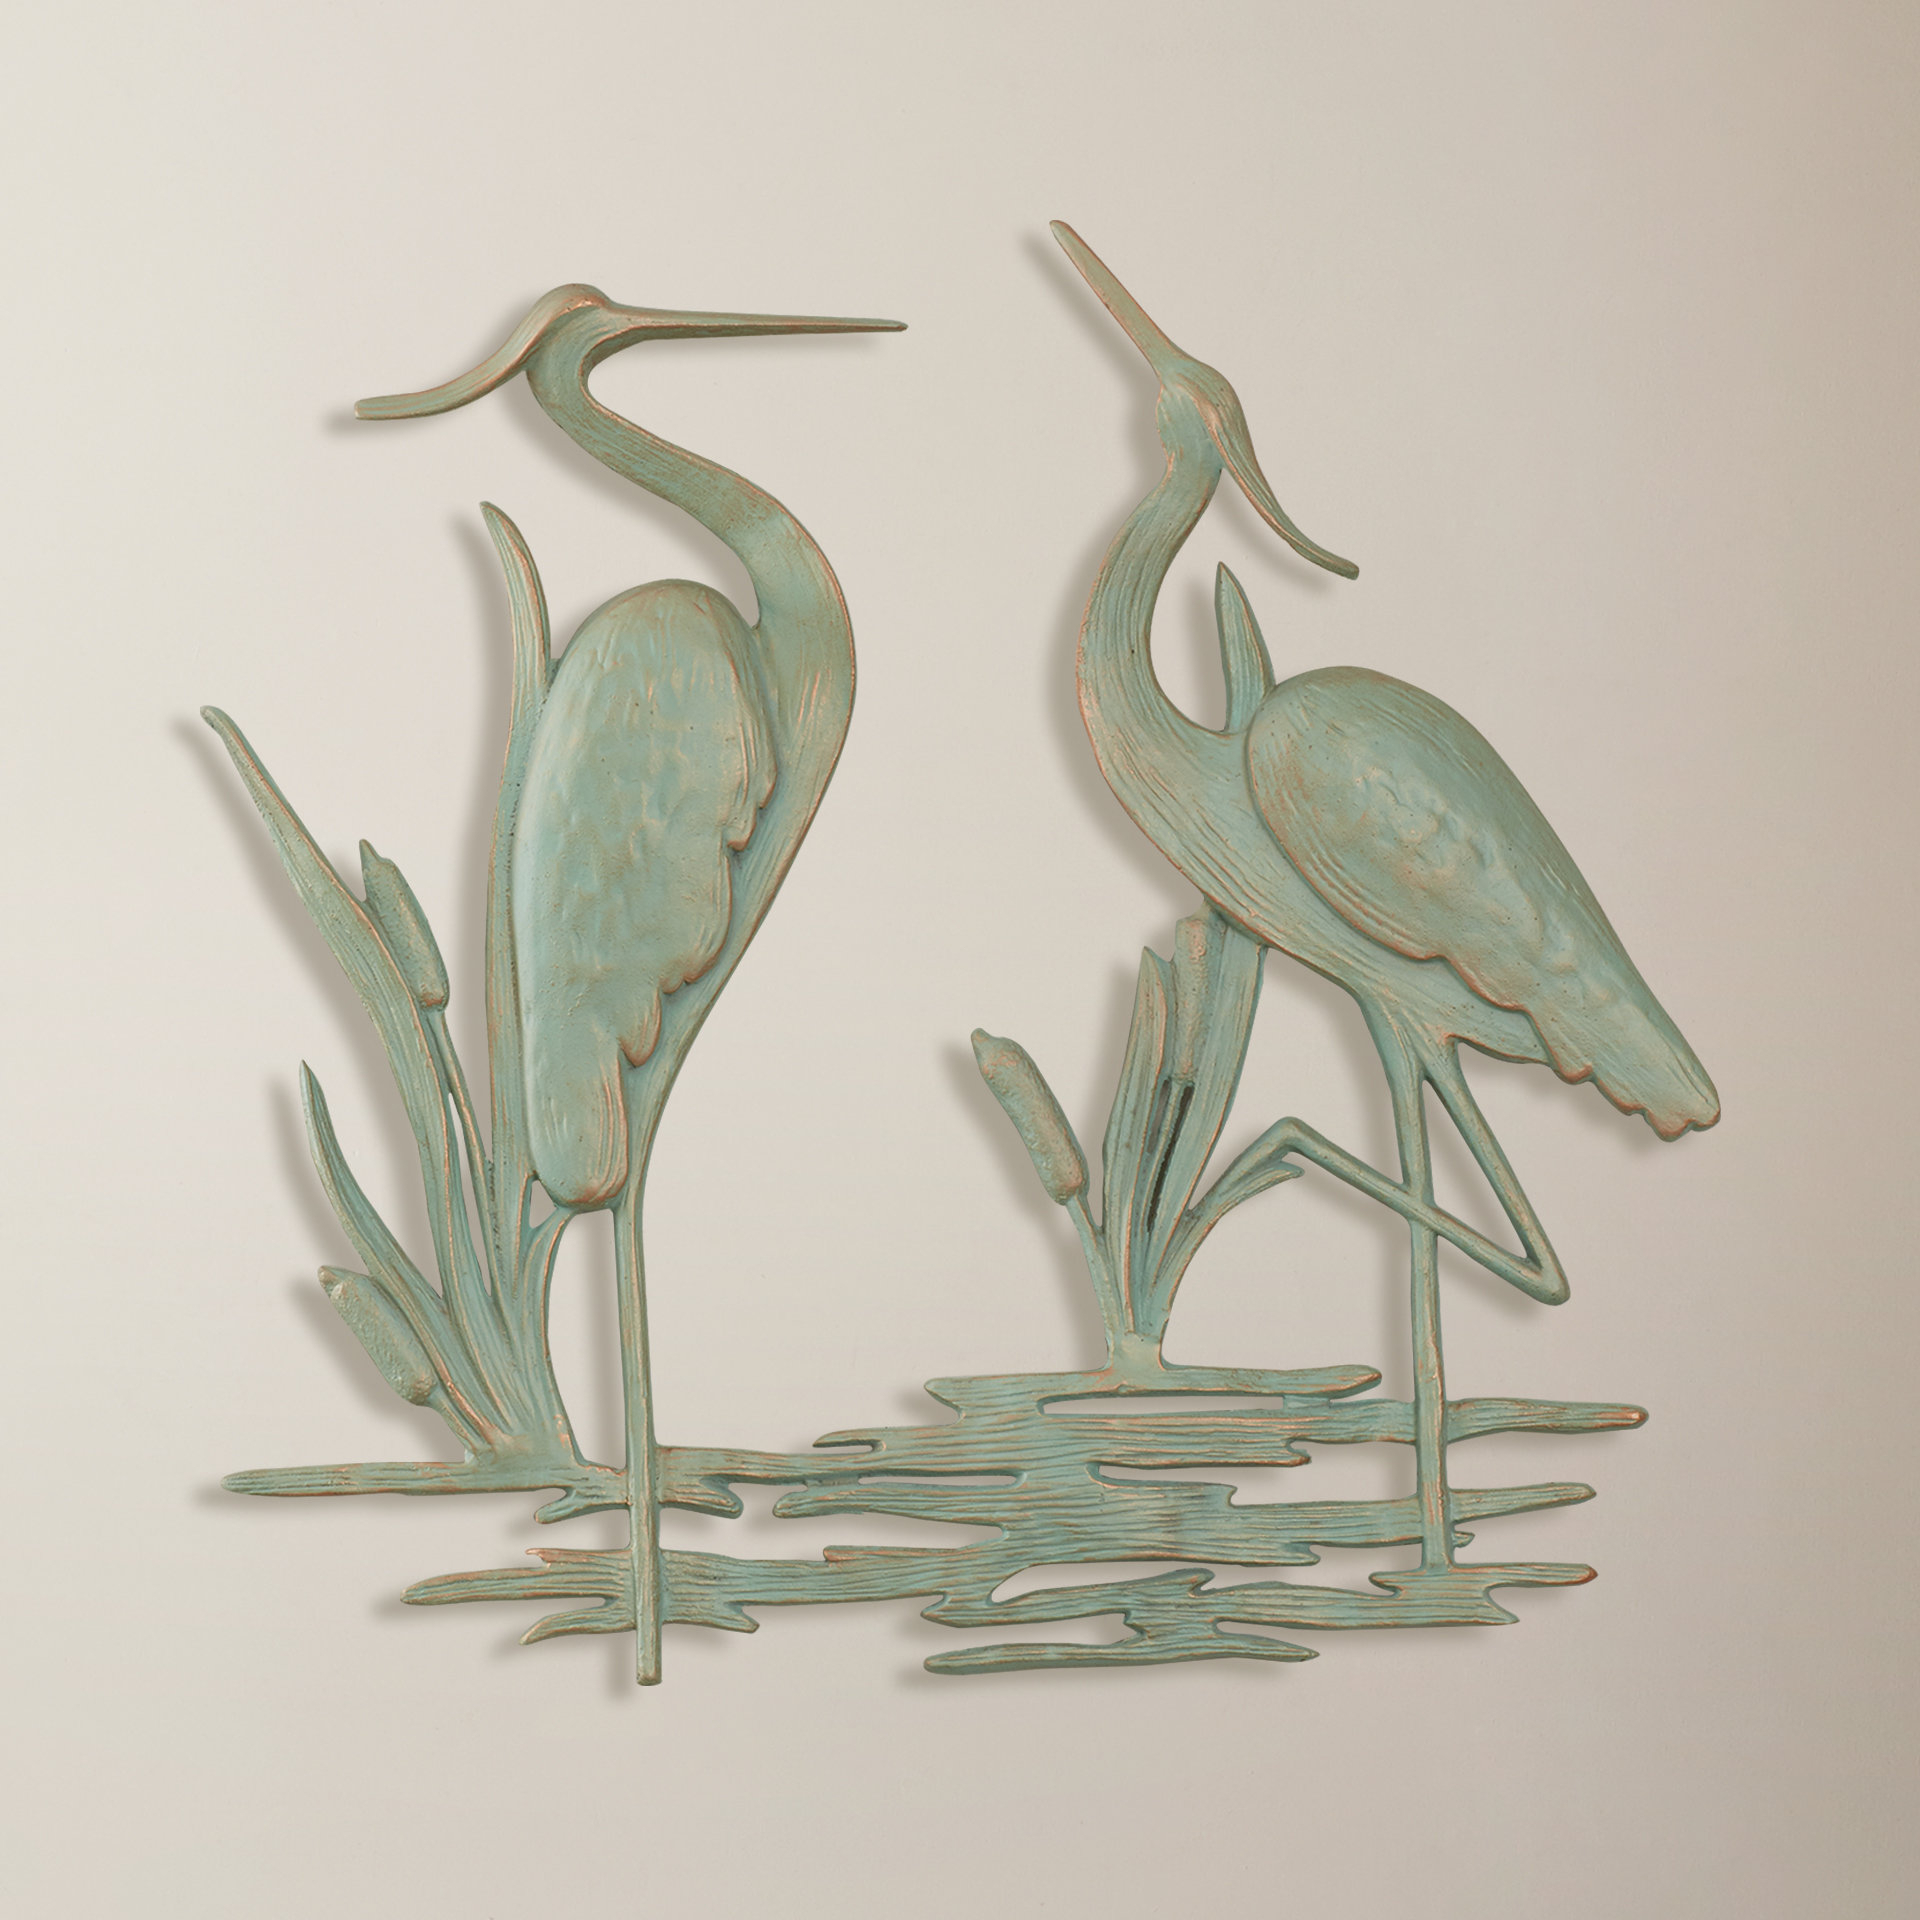 Osceola Double Heron Wall Decor Throughout Well Known Beachcrest Home Osceola Double Heron Wall Décor & Reviews (View 1 of 20)